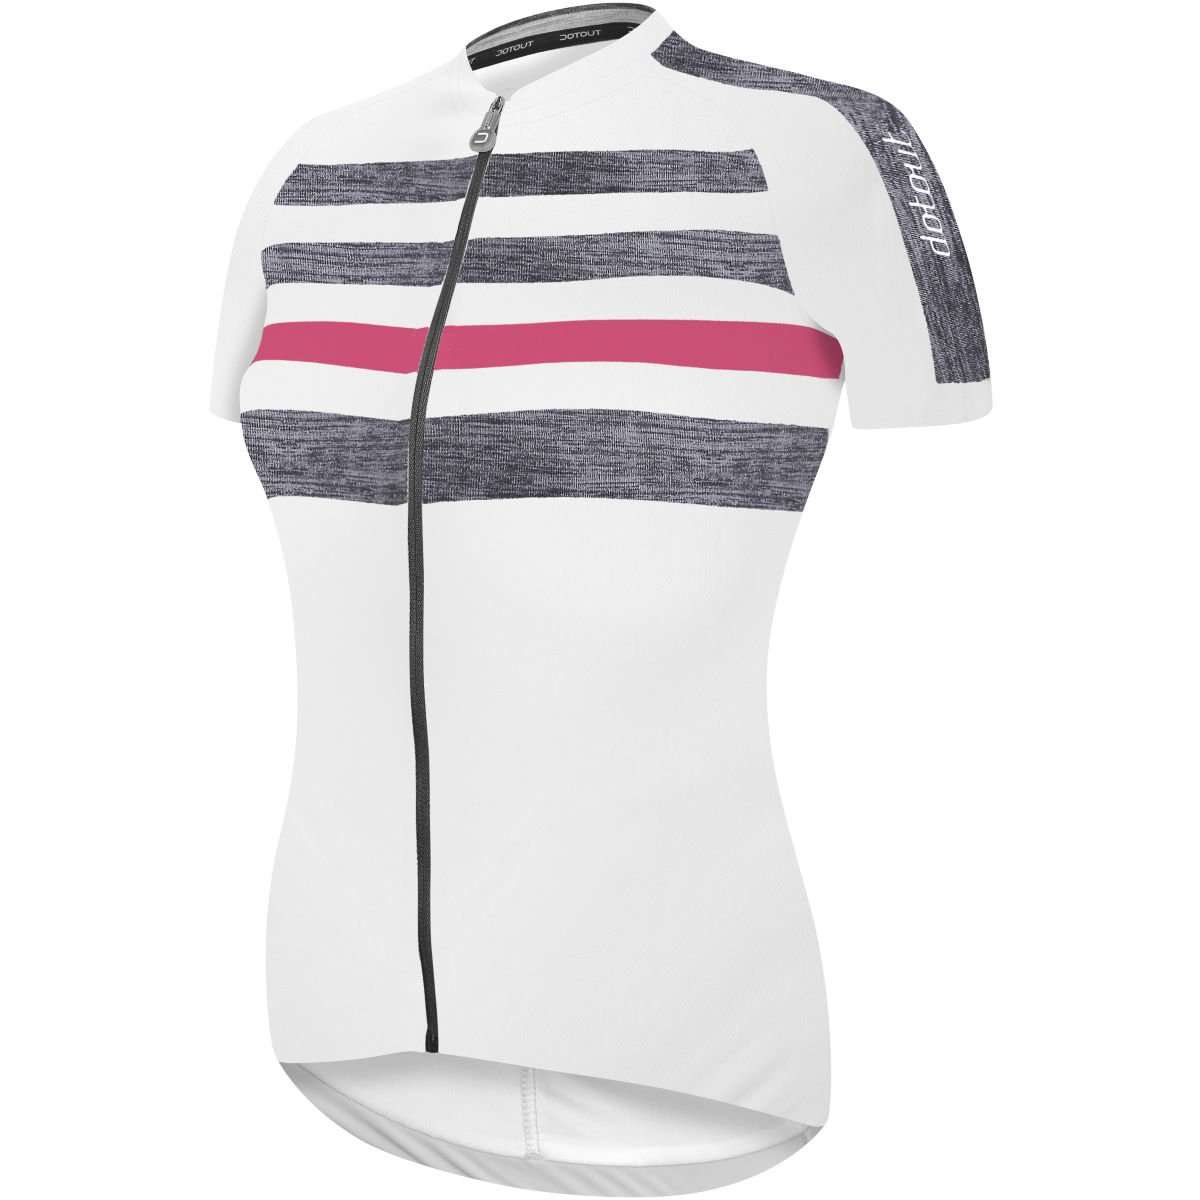 Image of Maillot Femme Dotout Stripe - L Blanc | Maillots